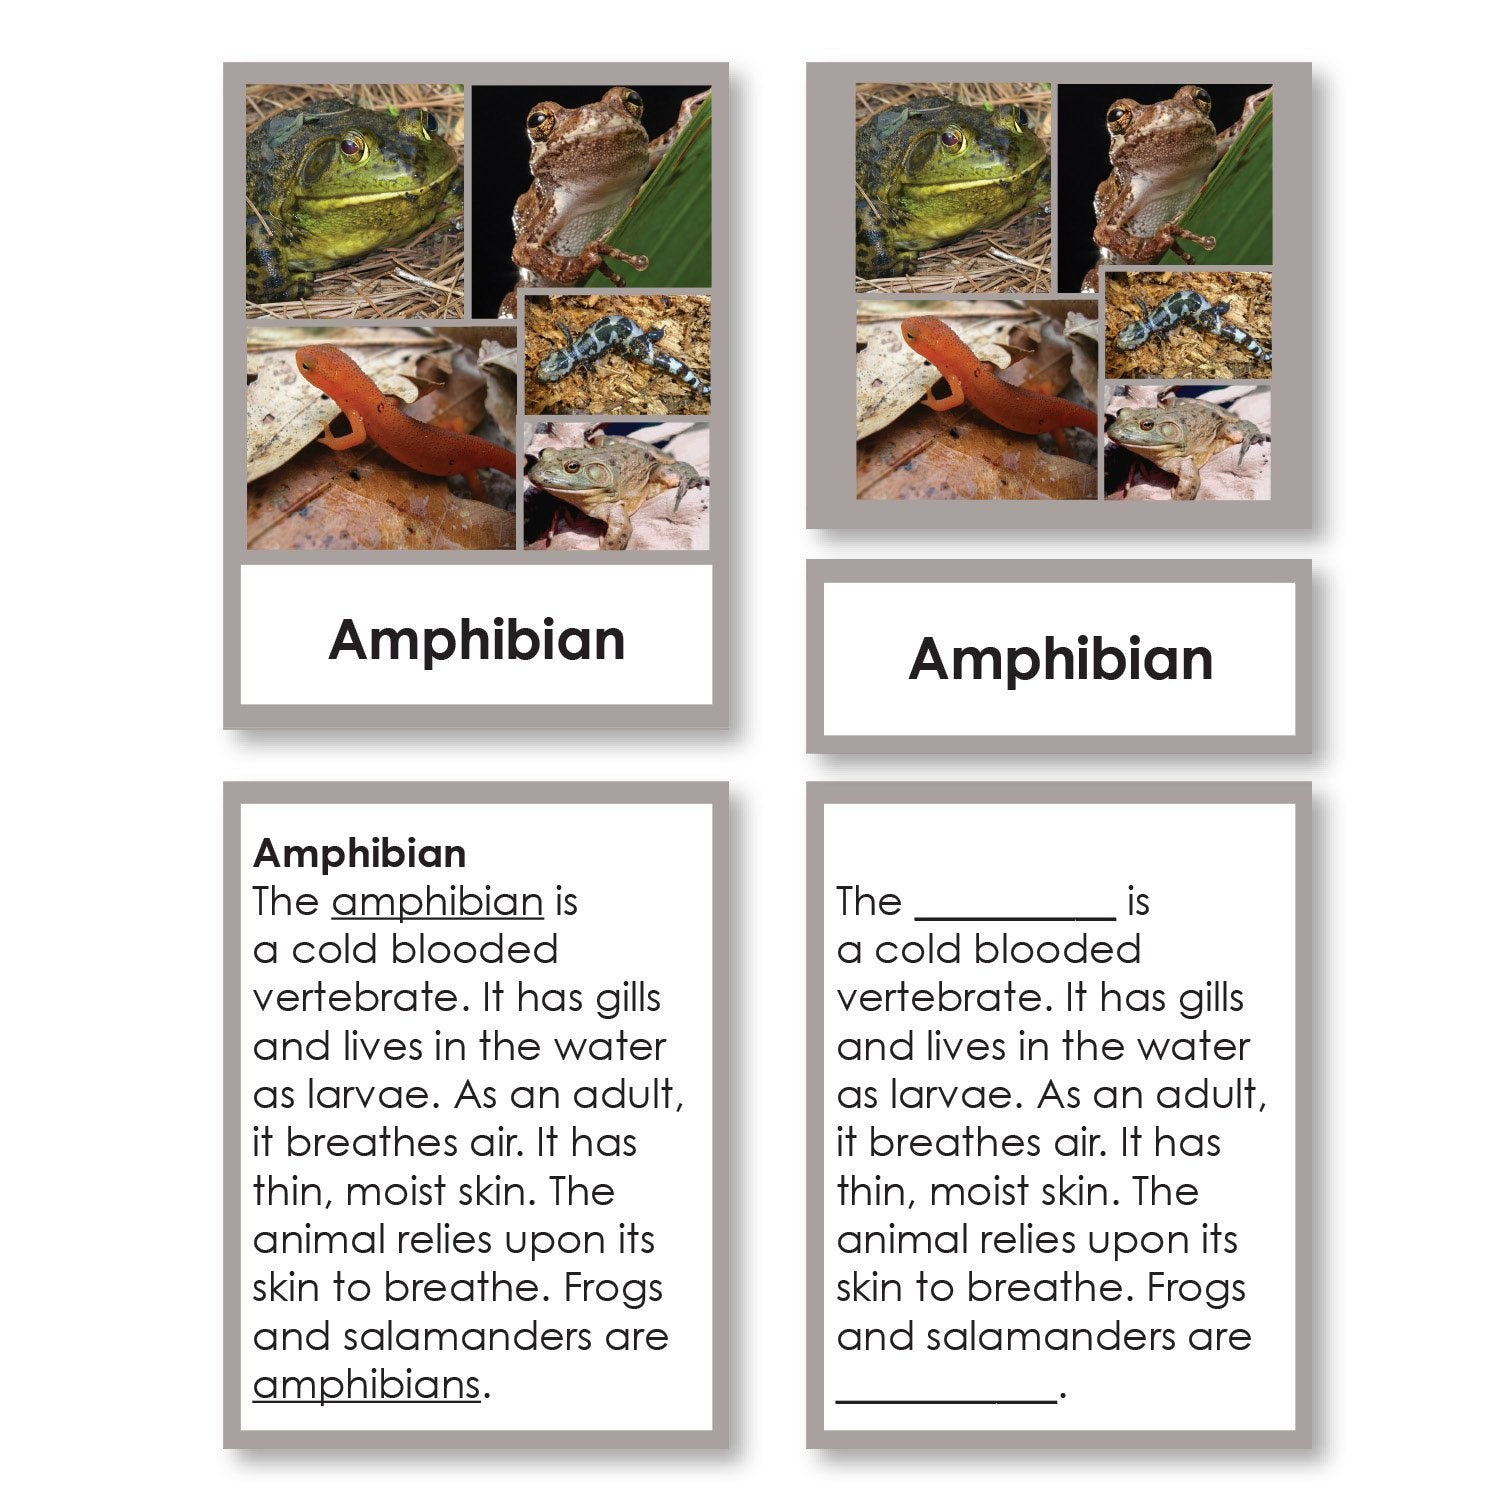 Zoology-Animal Classification/ Identification - Vertebrate Classification 3-Part Cards With Definitions